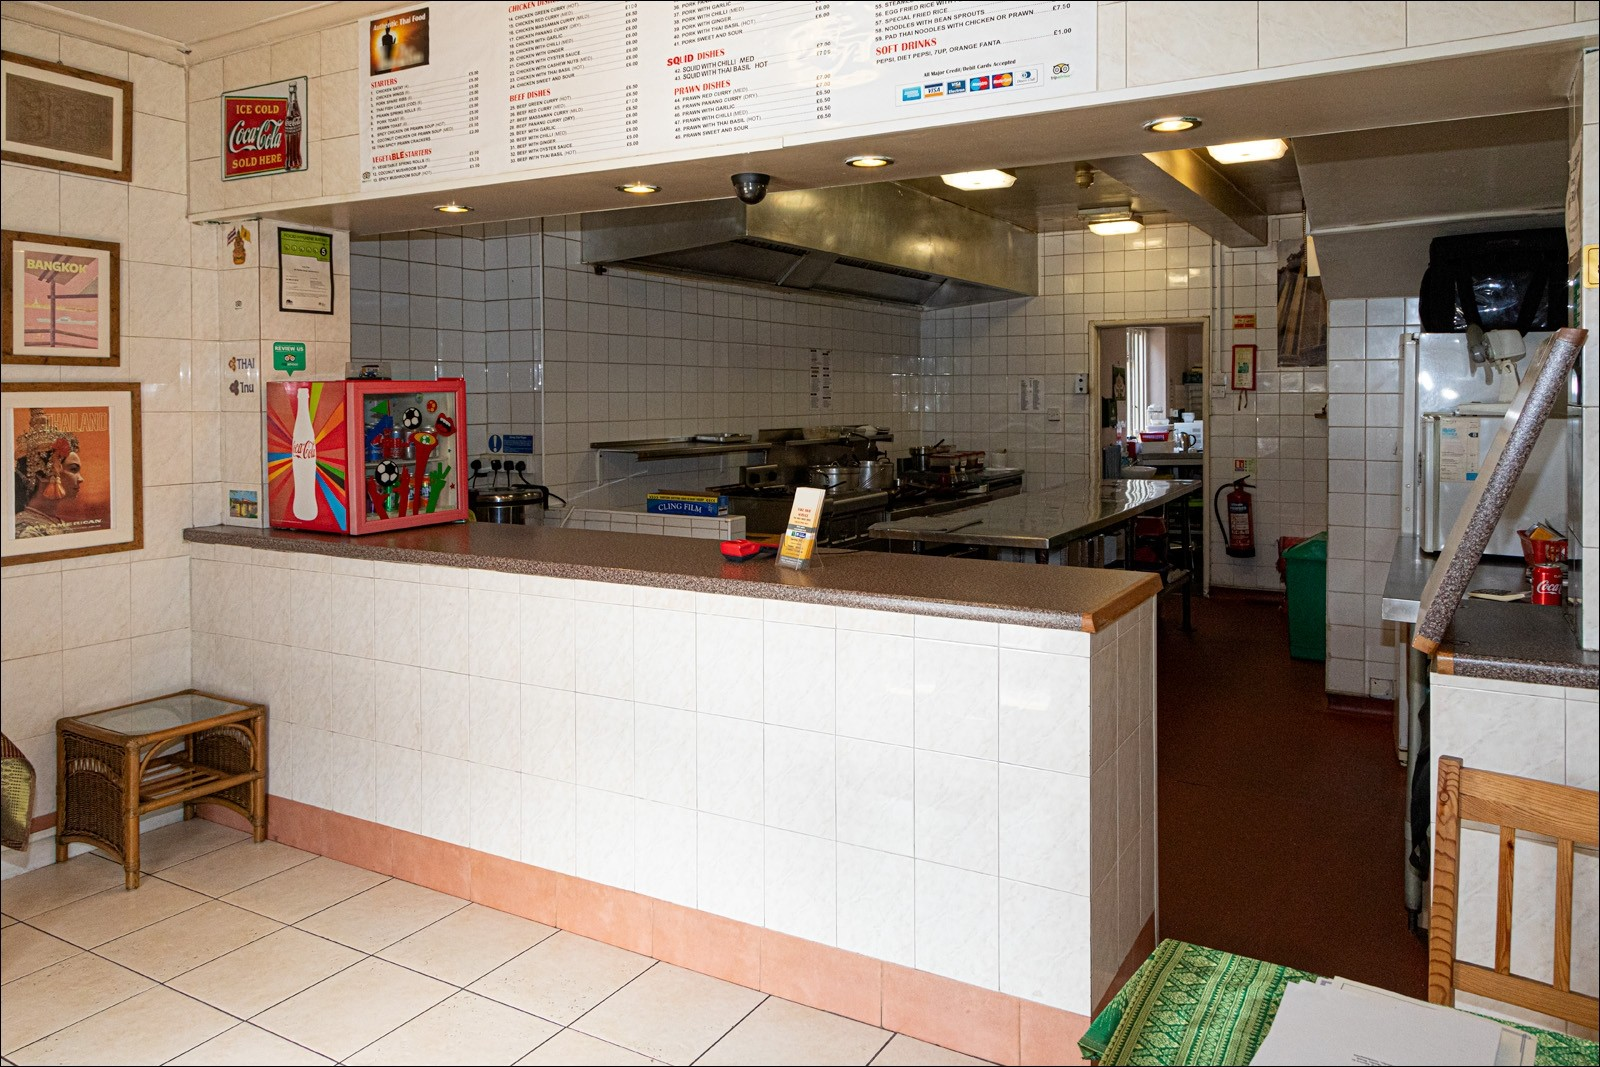 Thai Take Away With Deliveries (A5 Use), 2 Bed Flat Above, Main Road Parade, Southampton, Hampshire - Image 2